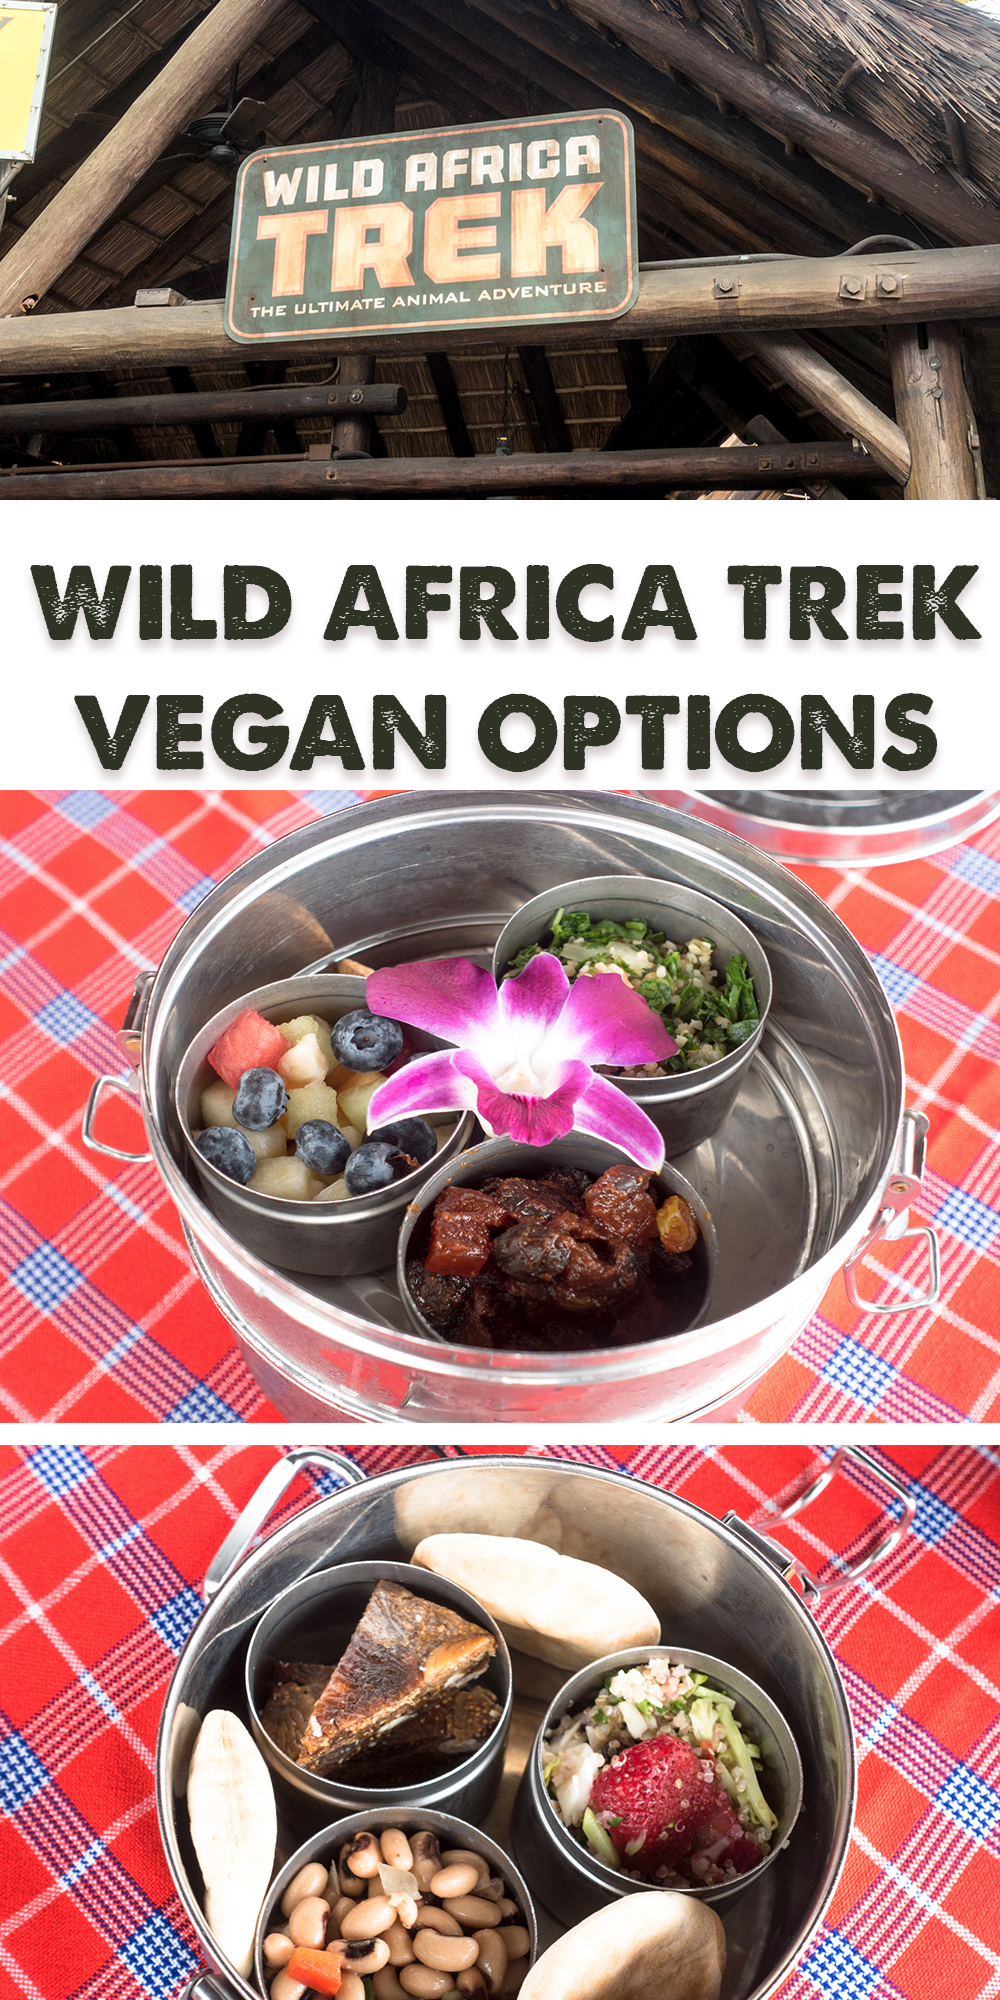 Vegan options available on Disney's Wild Africa Trek in Animal Kingdom. #travel #vegan #disney #Disneyworld #animalkingdom #vegantravel